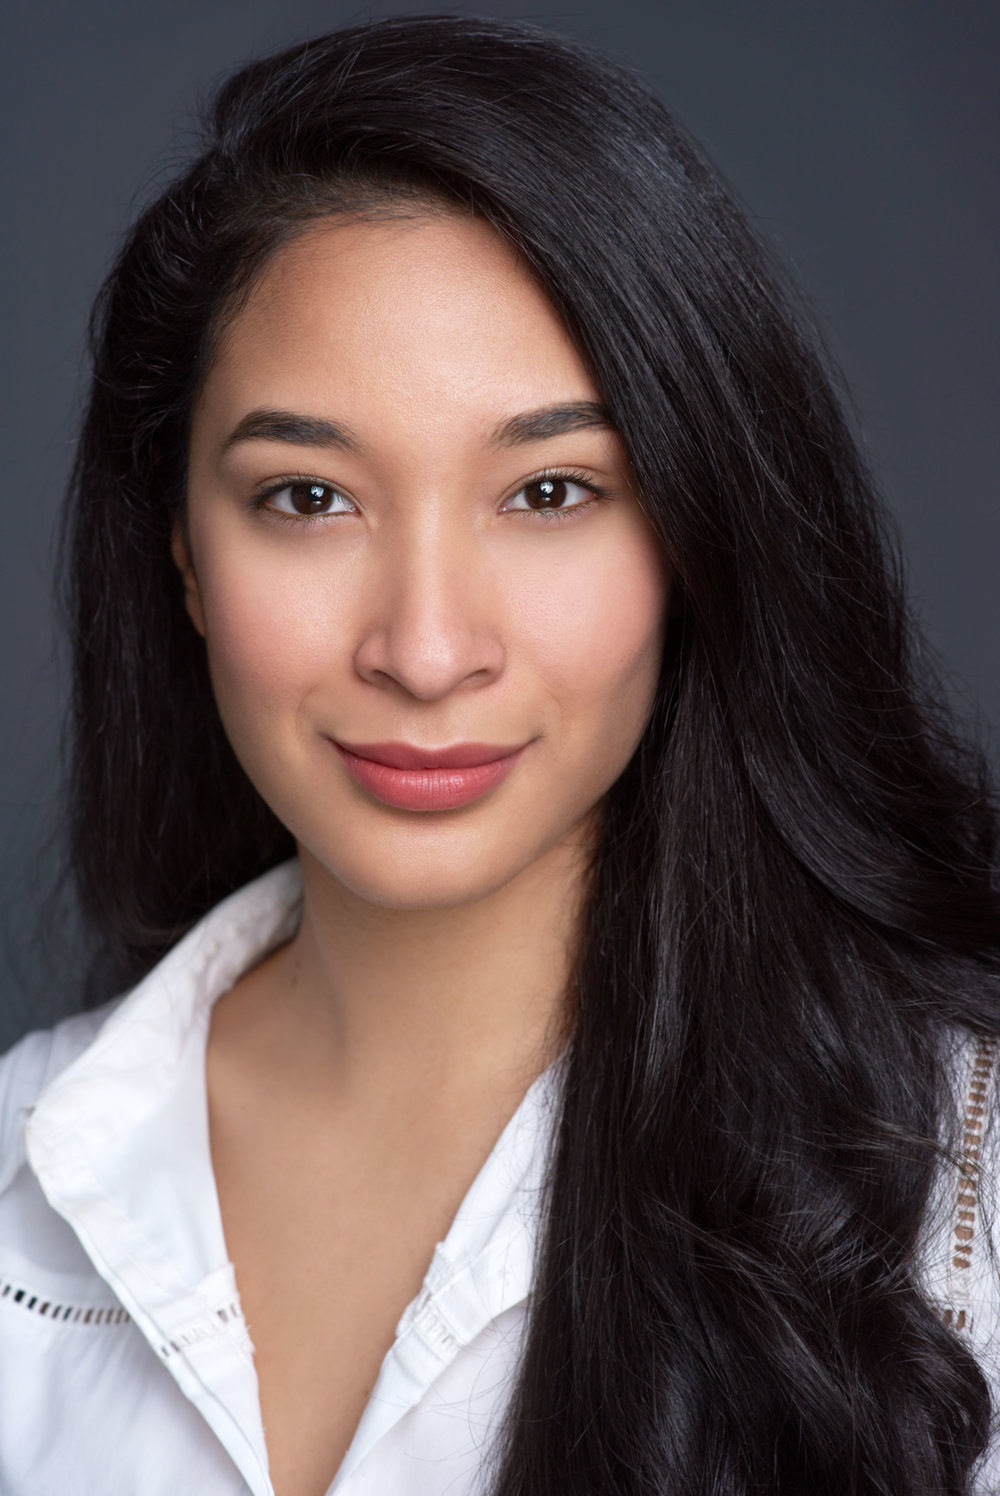 Mildred Gil - Mildred is a recent graduate of Marymount Manhattan College with a B.F.A. in Acting. Her favorite work includes Servant of Two Masters, School of the America's (MMC), Romeo and Juliet (York College PAC), and Into the Woods (Pompeii Players). She is very excited to be a part of this production with the Egg and Spoon Theatre Collective!